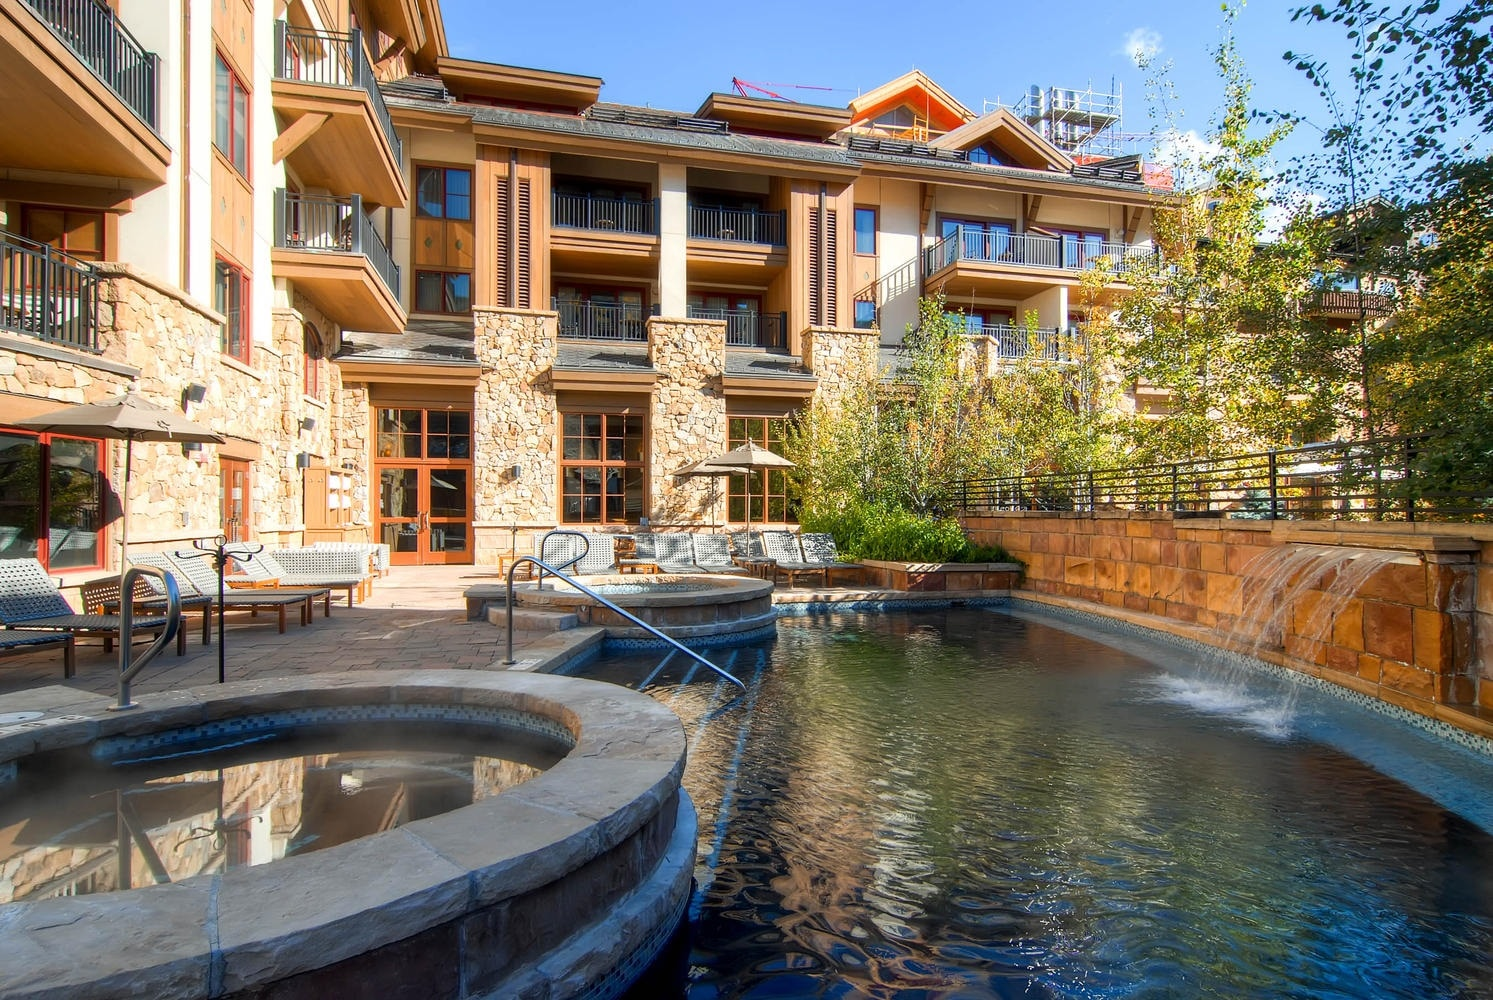 Contemporary Condo in Vail Village with Mountain views